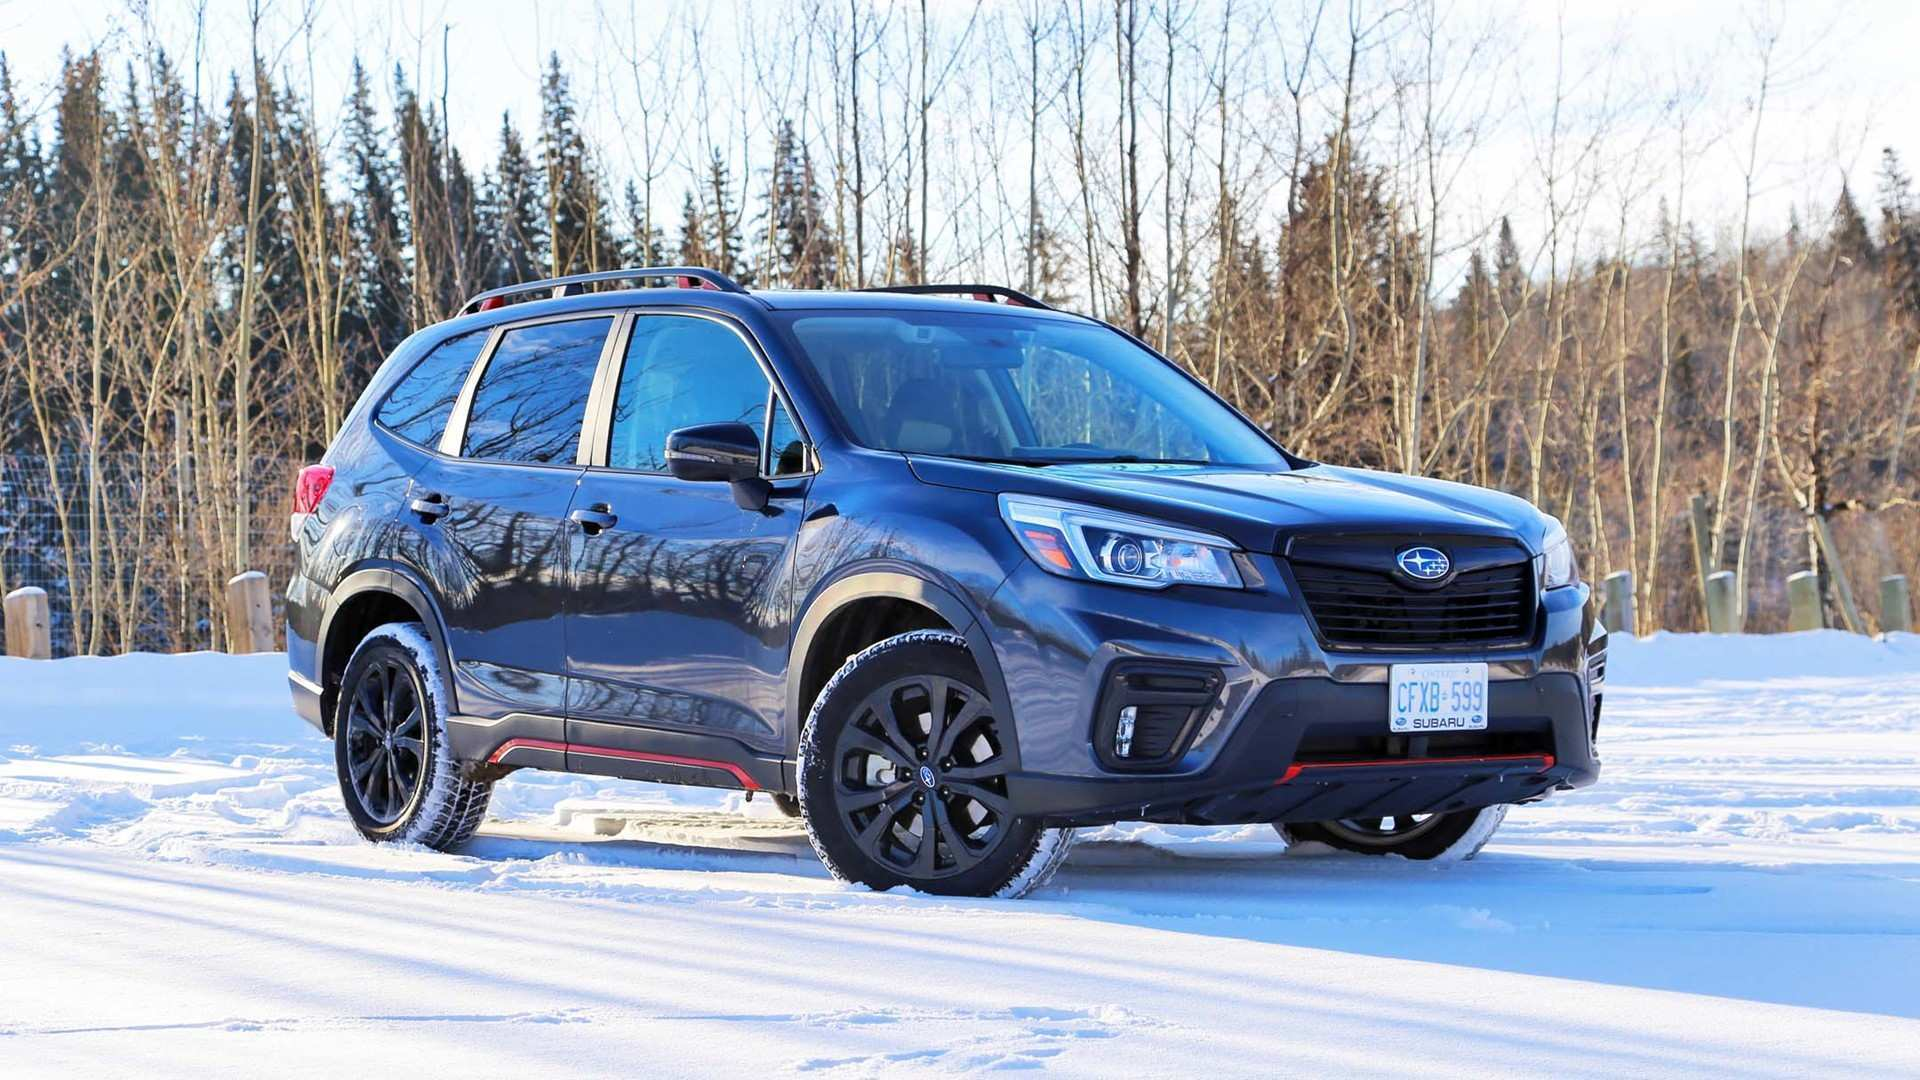 65 Concept of 2019 Subaru Forester Sport 2 Spy Shoot by 2019 Subaru Forester Sport 2